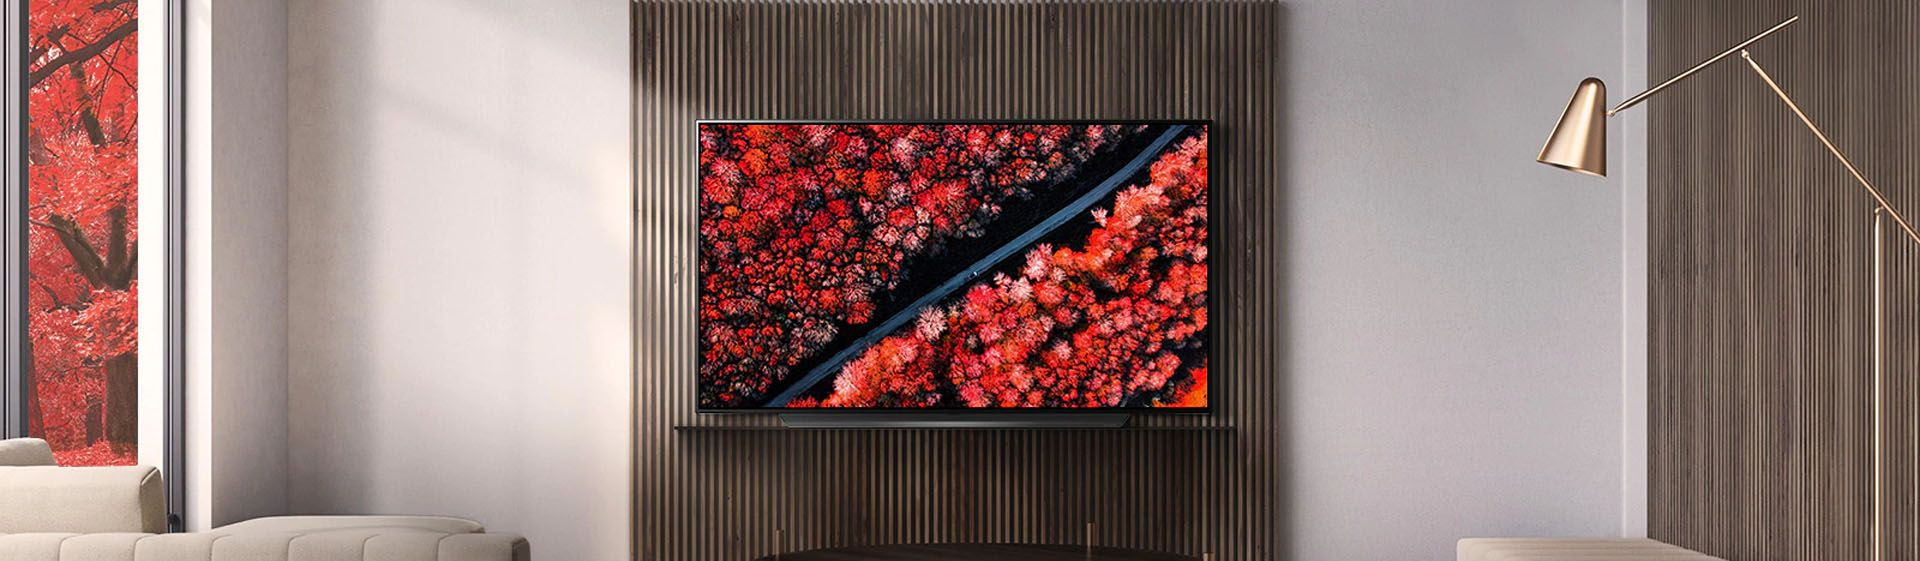 Review LG C9: vale a pena comprar esta smart TV OLED?